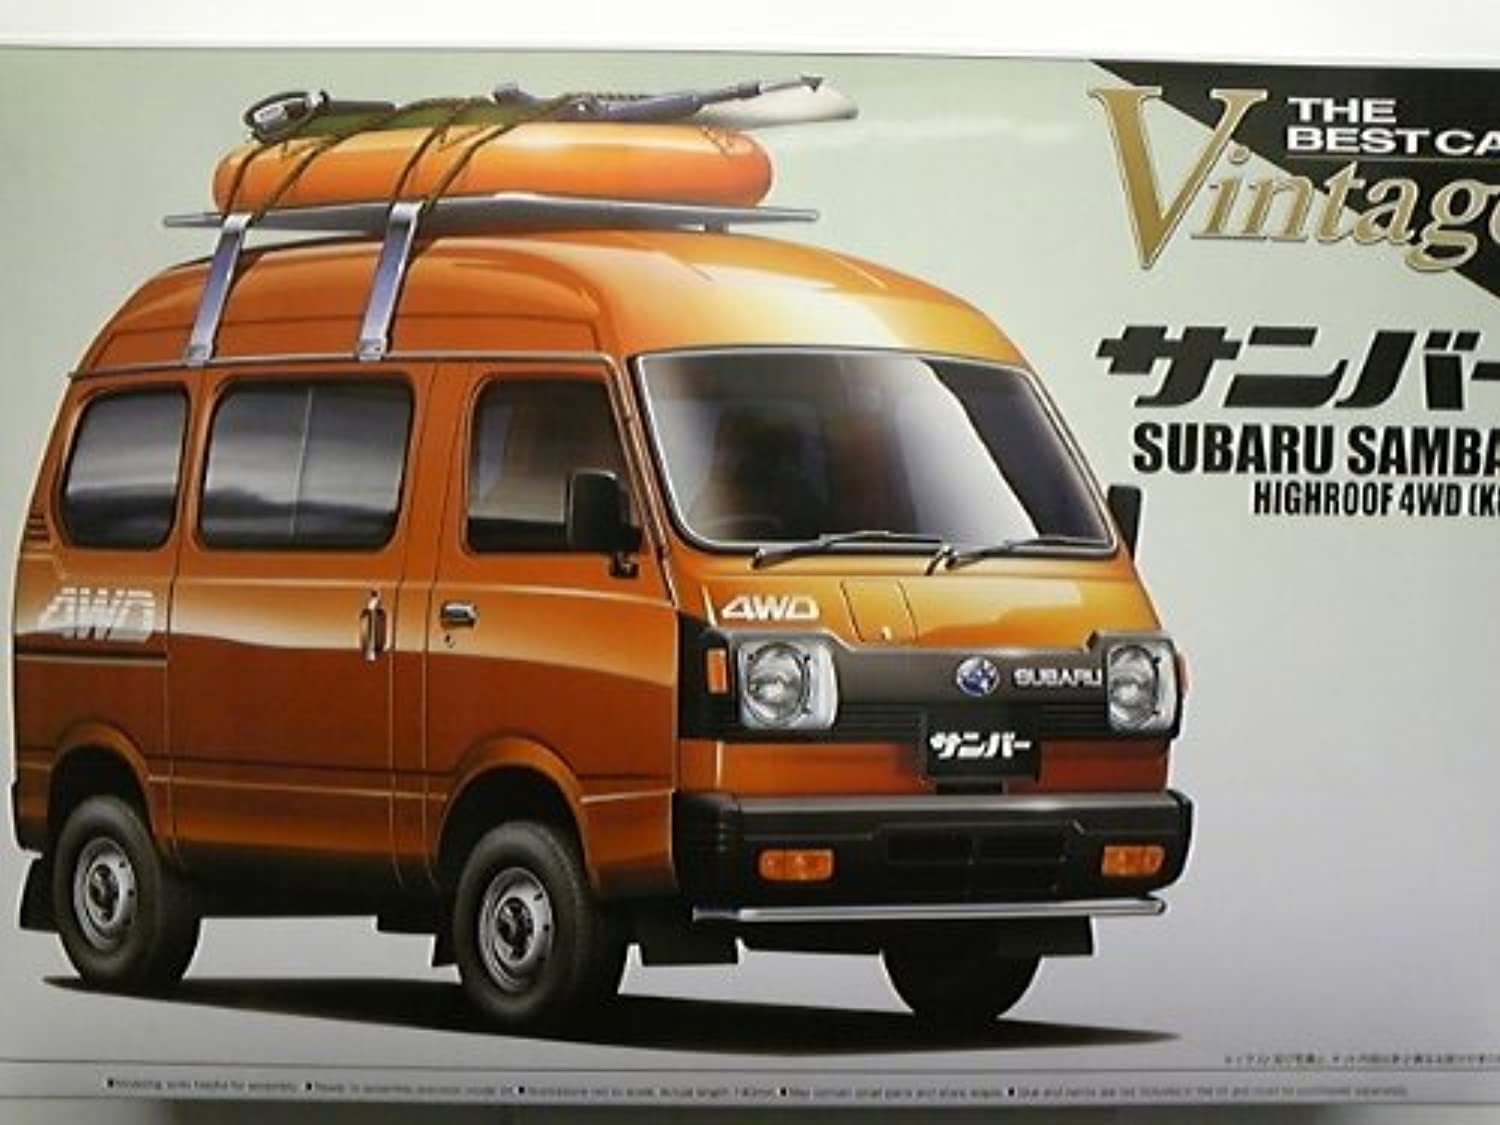 Aoshima Bunka Kyozai 1. 2.4. Best Car vintage No.4.5. Subaru Sambar high roof 4.WD K8.8.